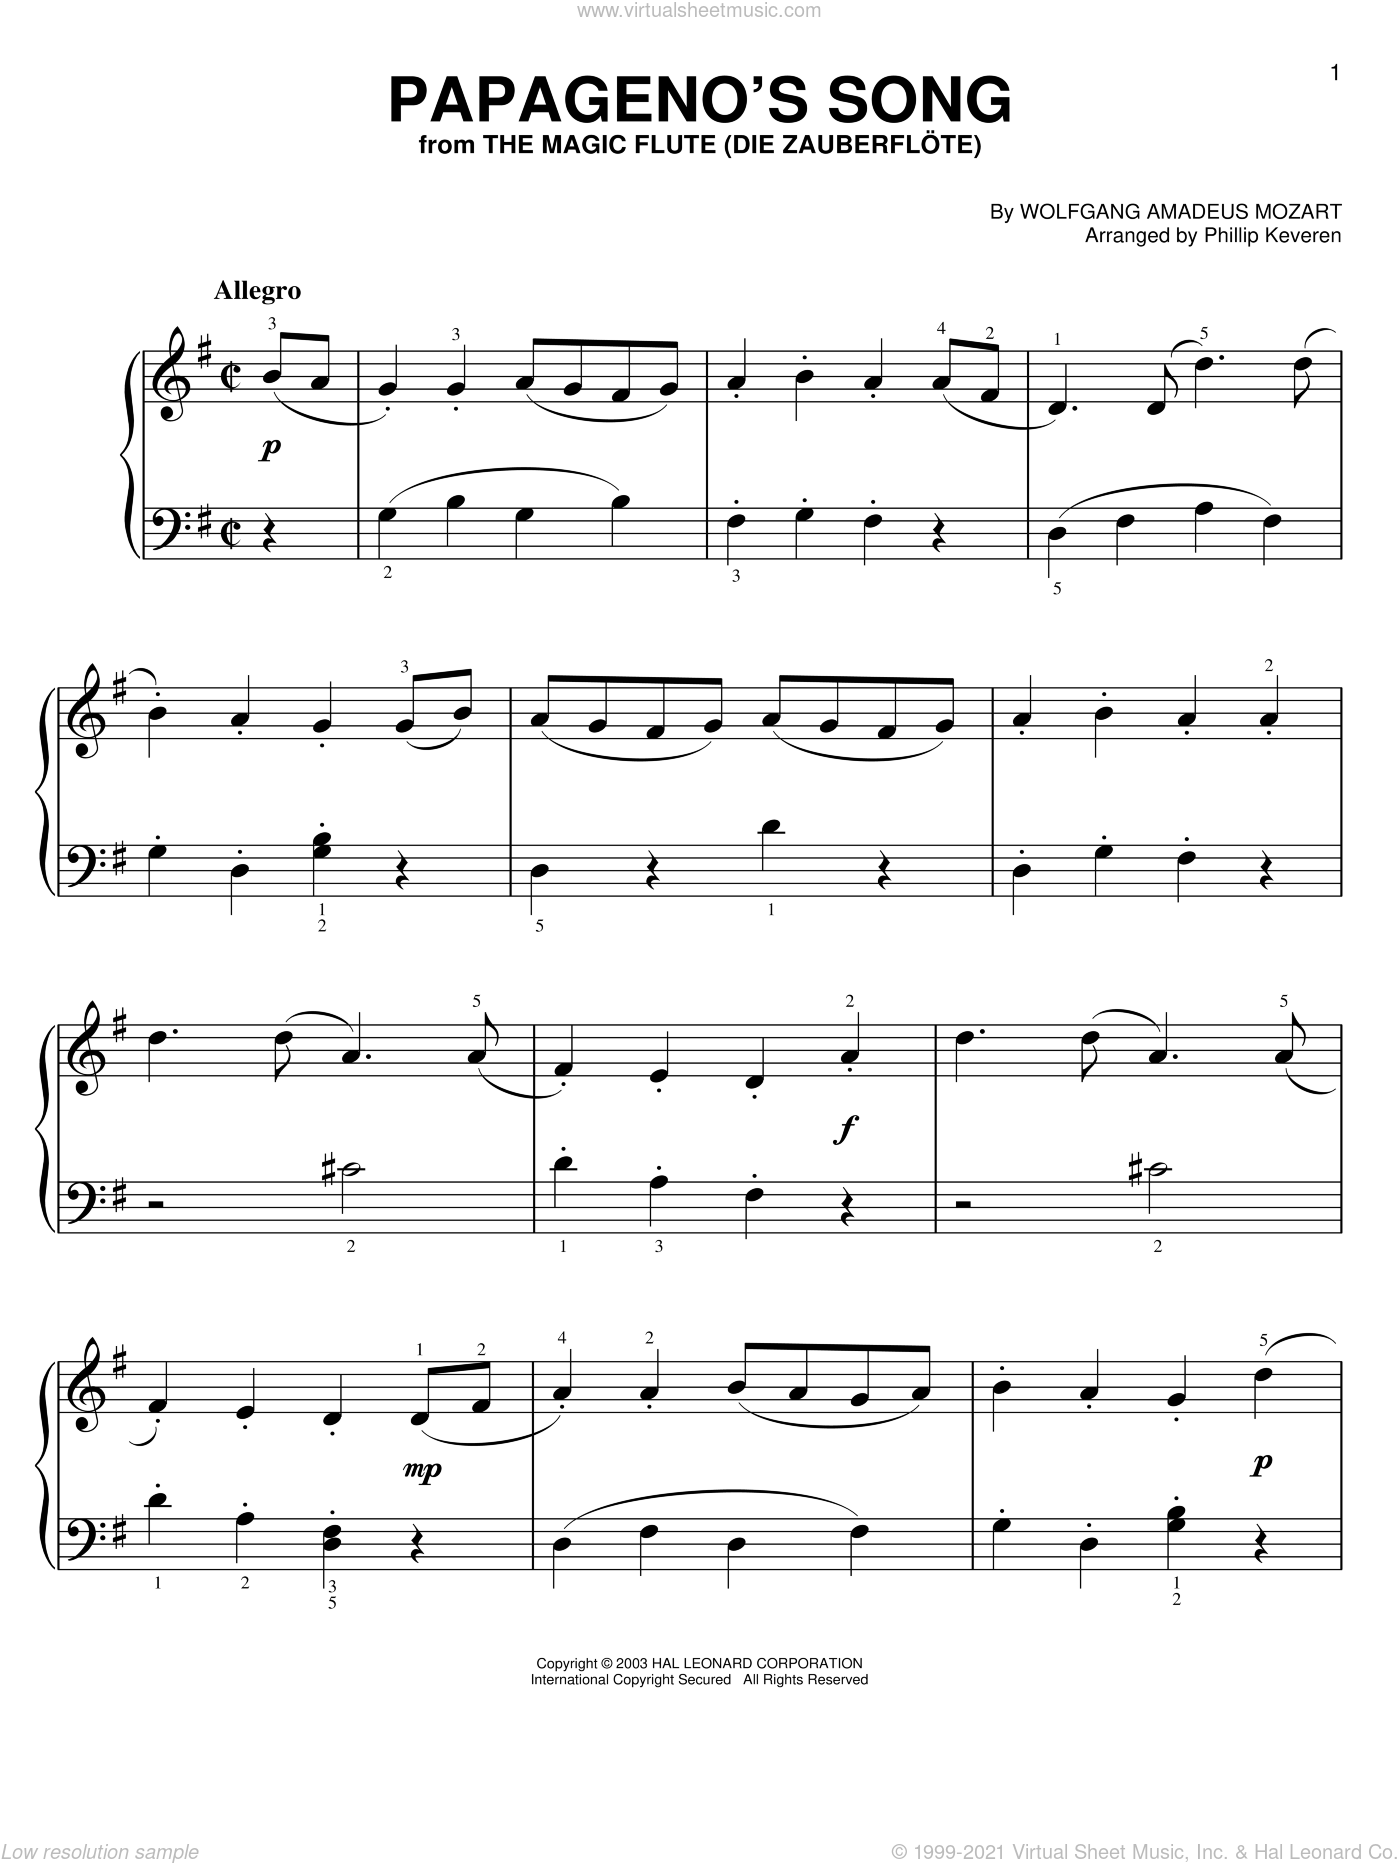 Papageno's Song sheet music for piano solo by Wolfgang Amadeus Mozart and Phillip Keveren, classical score, easy skill level